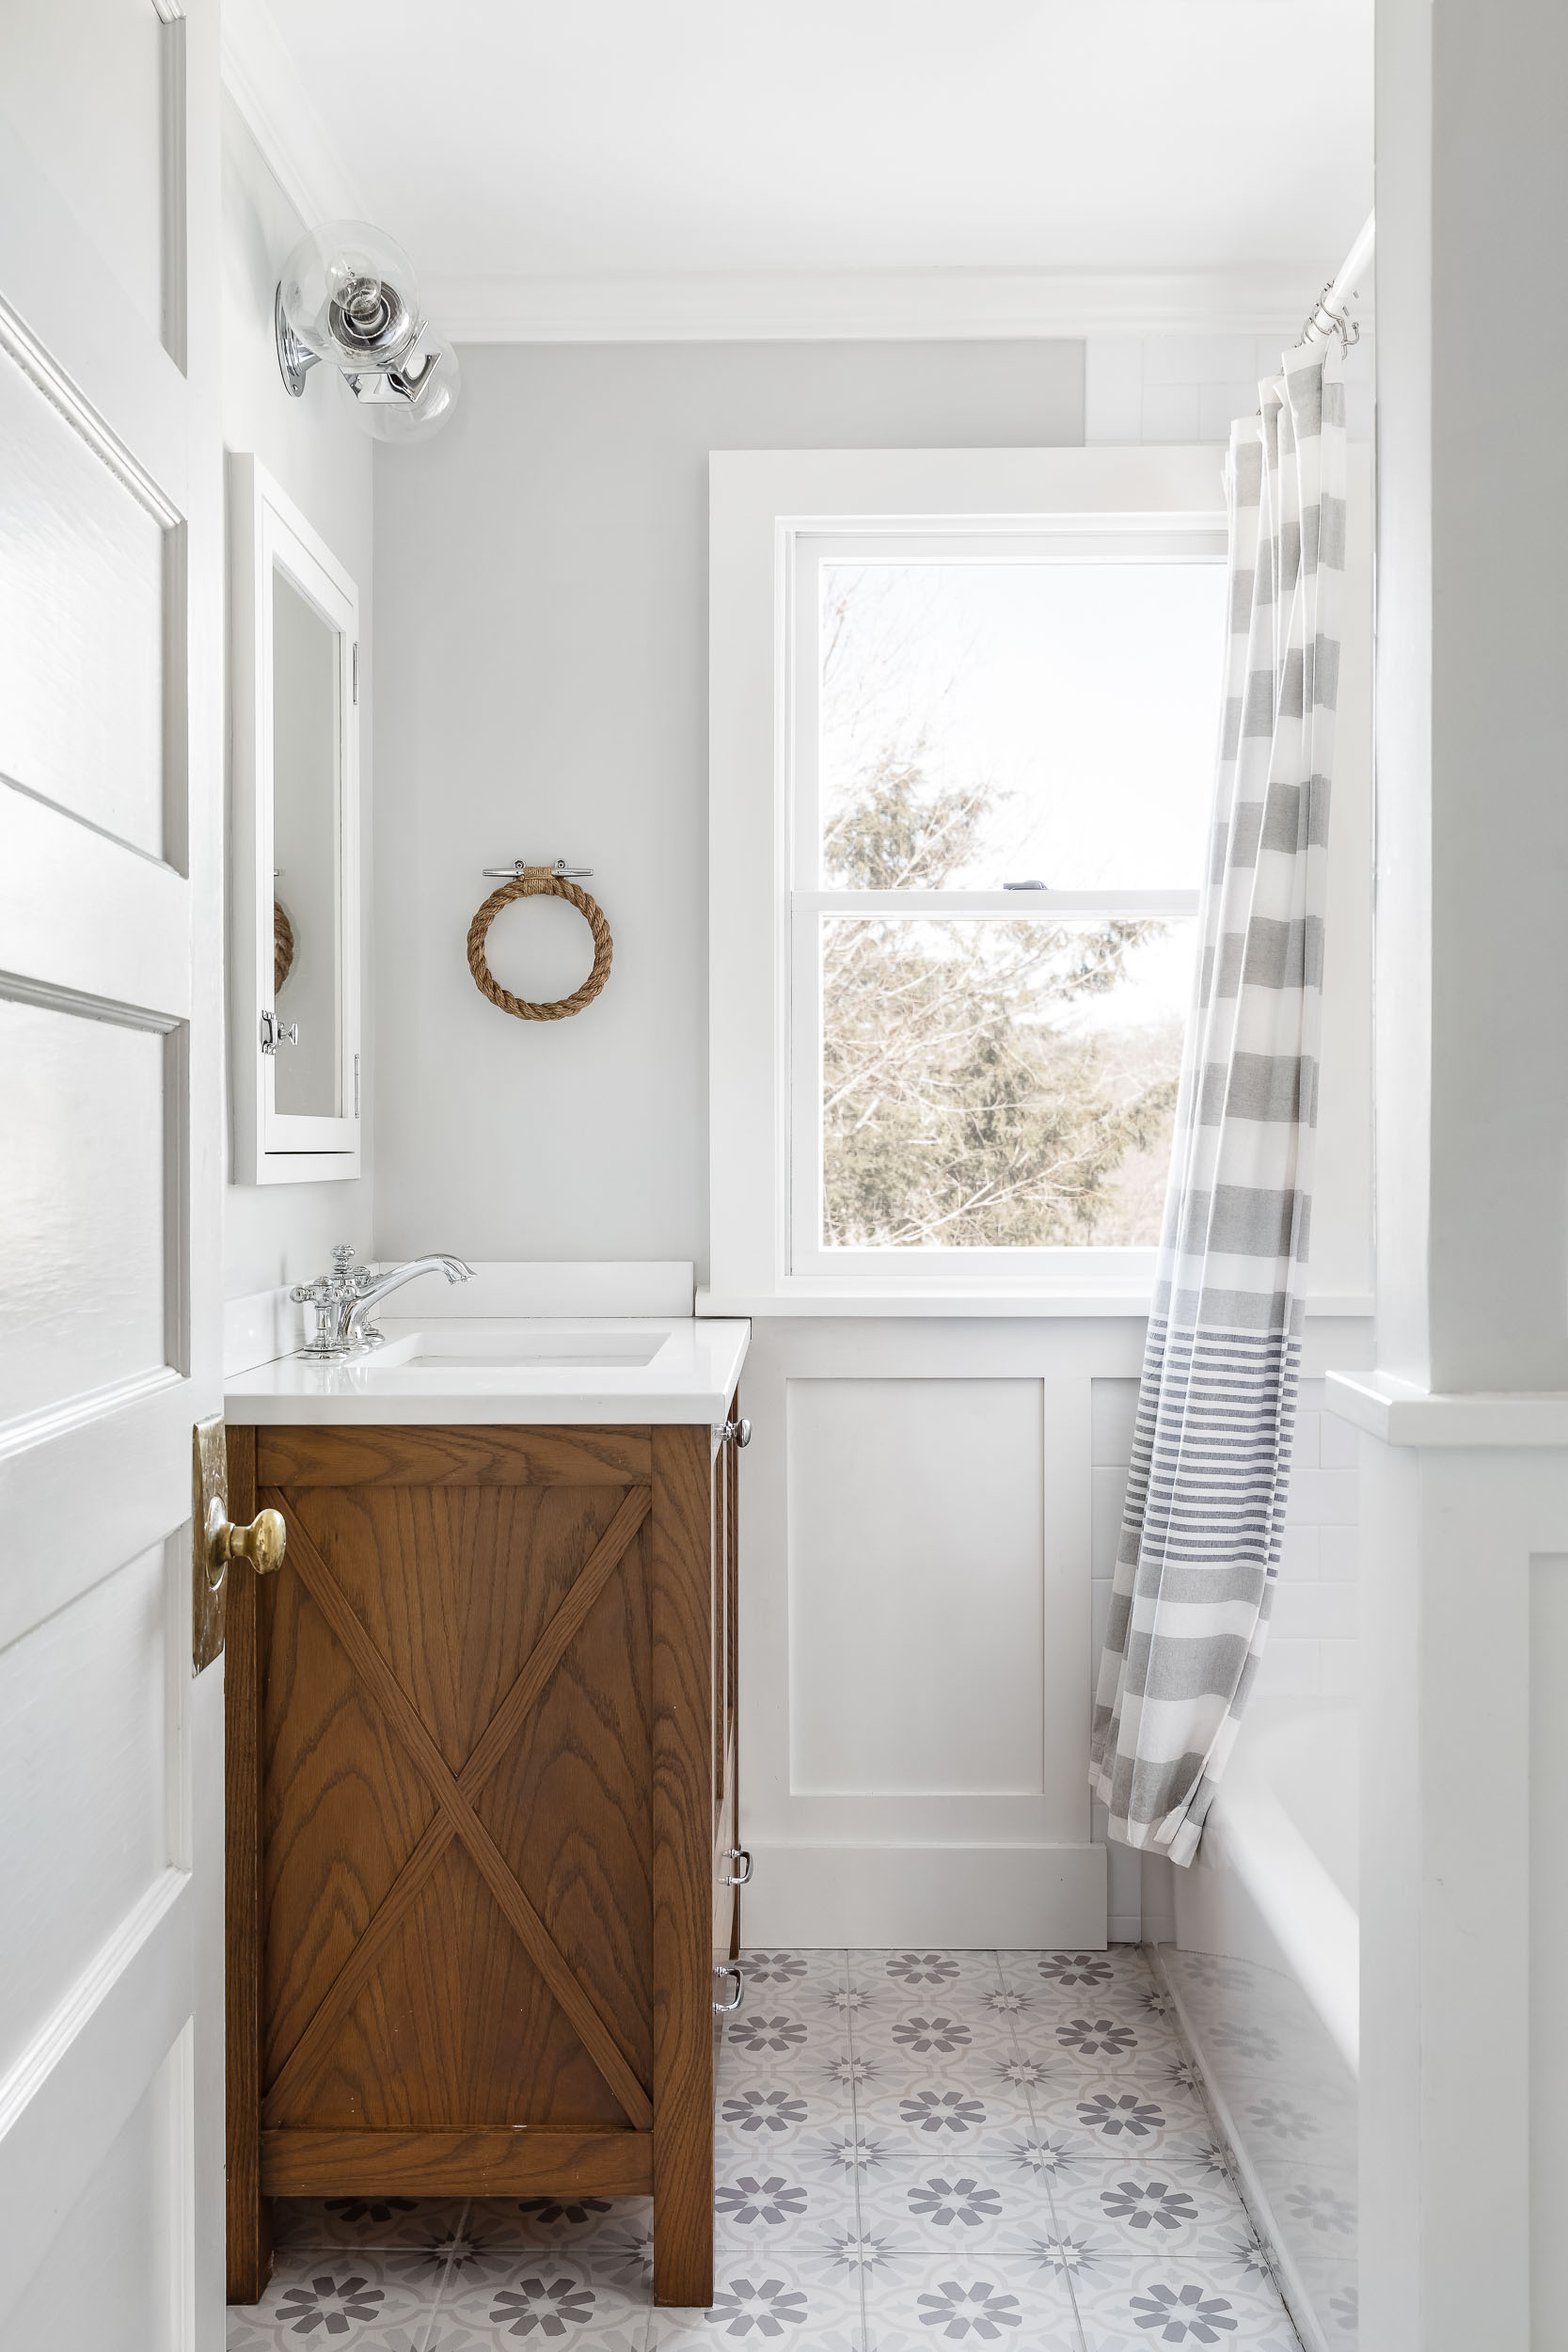 parker and parker design-interior design photography-new canaan ct-white and grey bathroom.jpg